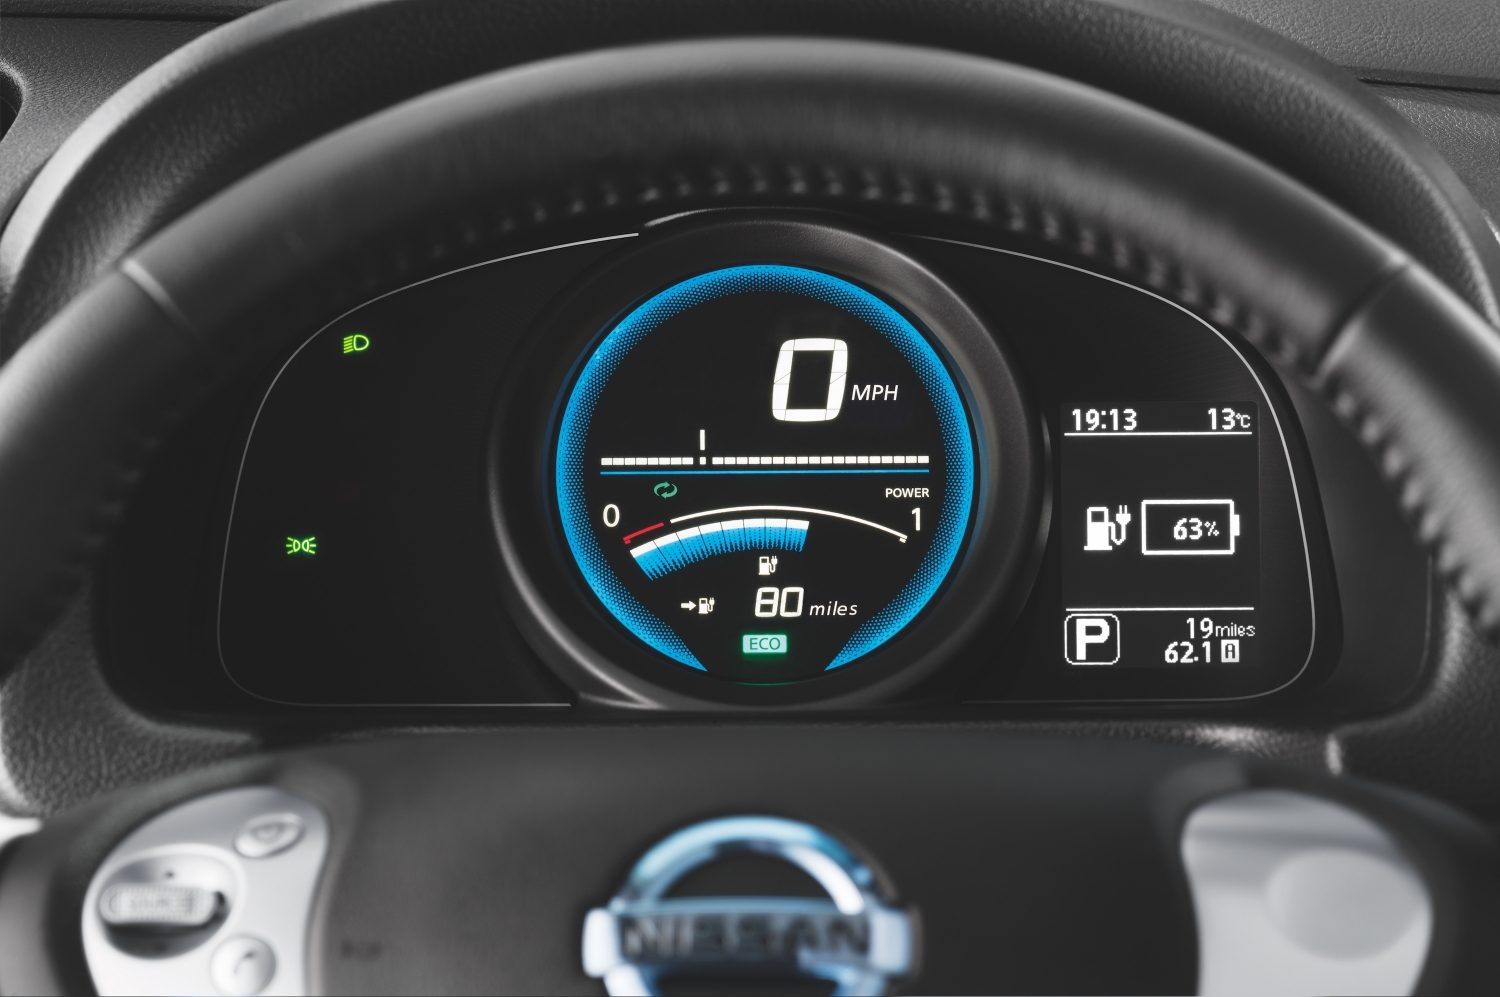 New Nissan e-NV200 Evalia dashboard